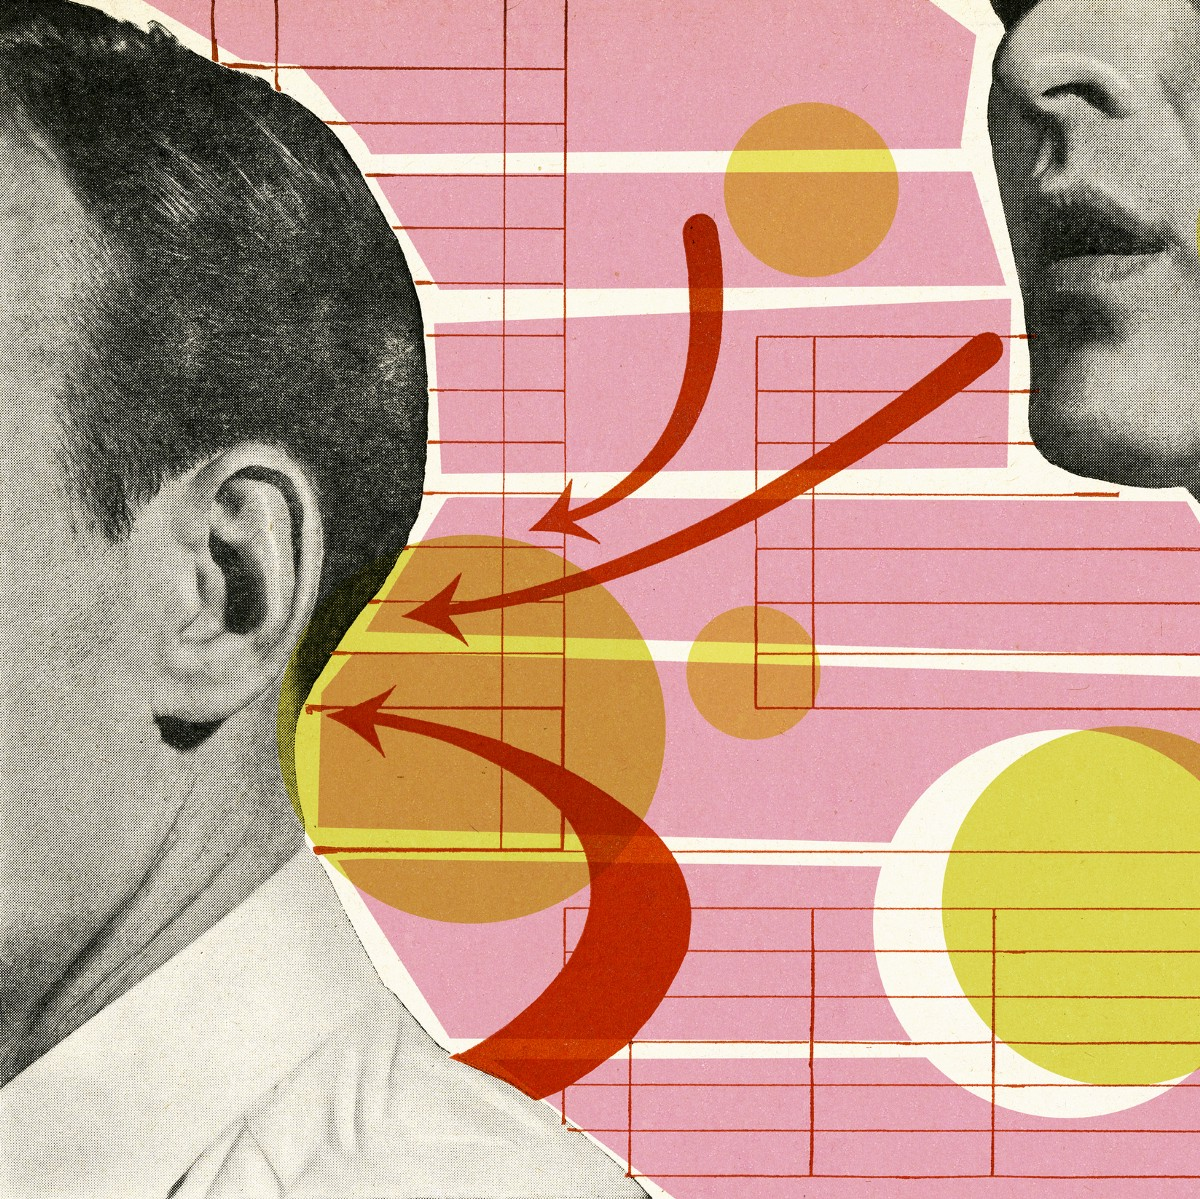 How to Tell a Chatty Co-Worker You Don't Want to Talk